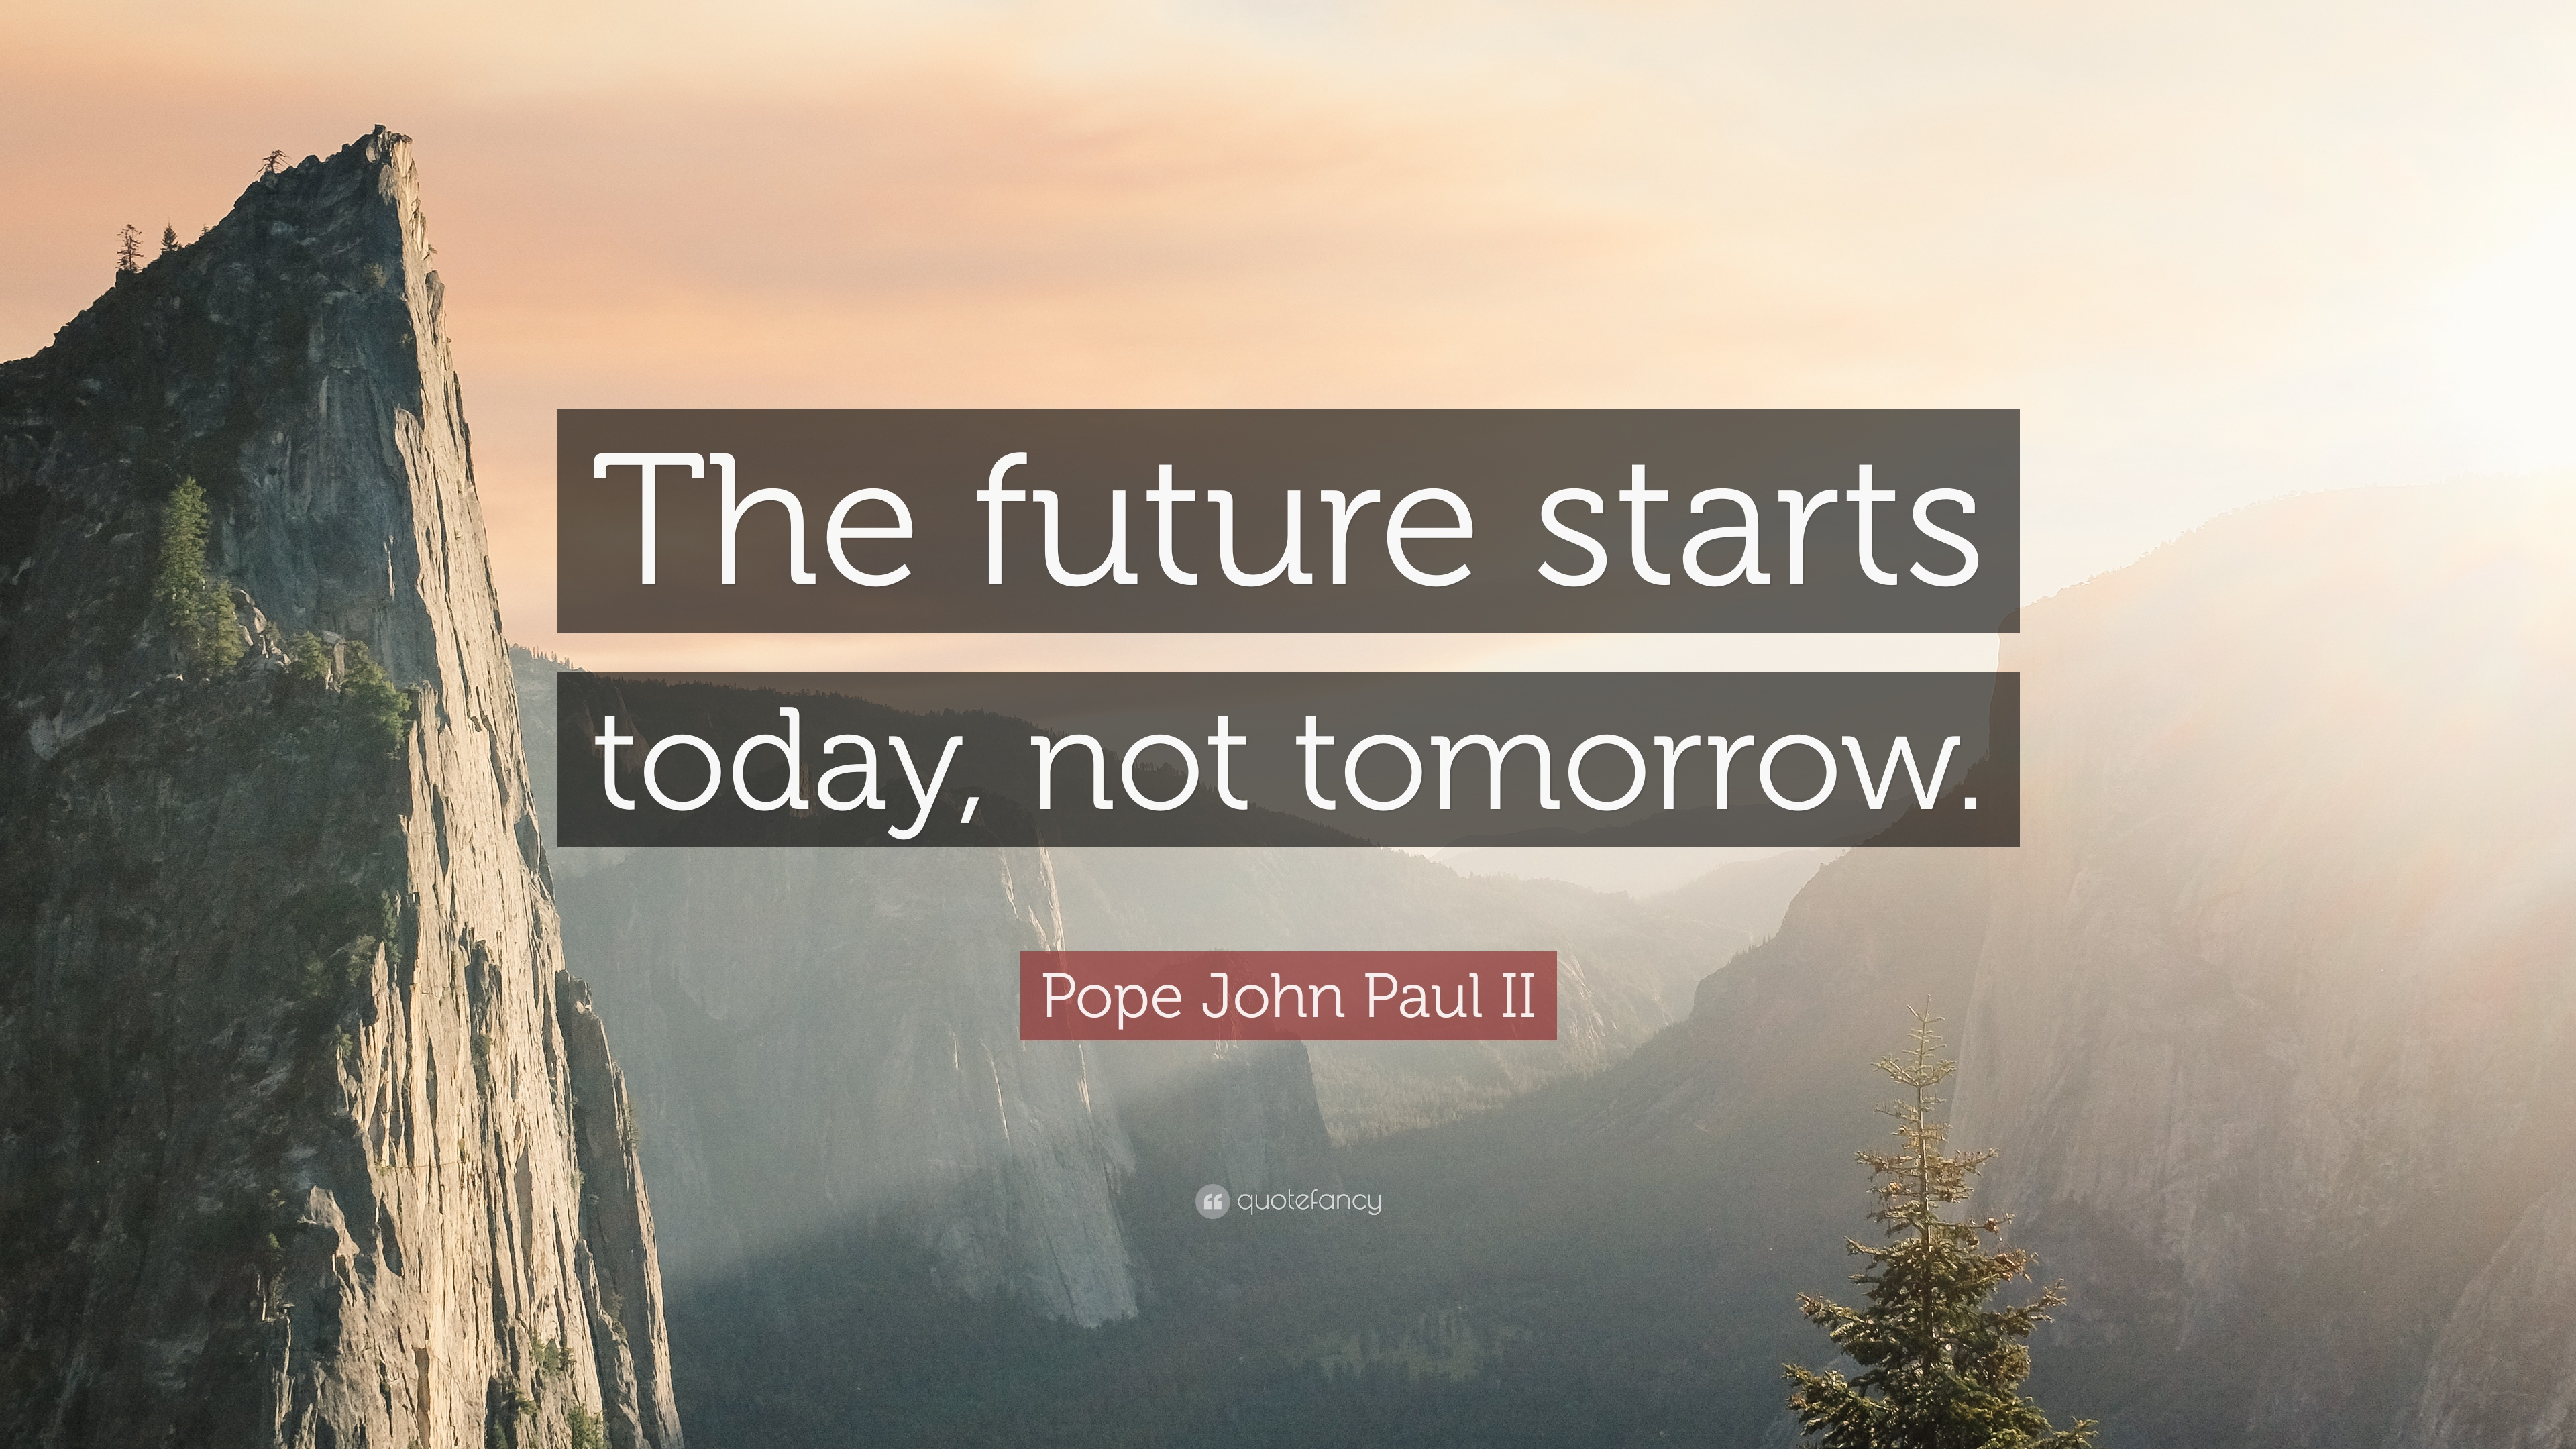 Attractive Future Quotes: U201cThe Future Starts Today, Not Tomorrow.u201d U2014 Pope John